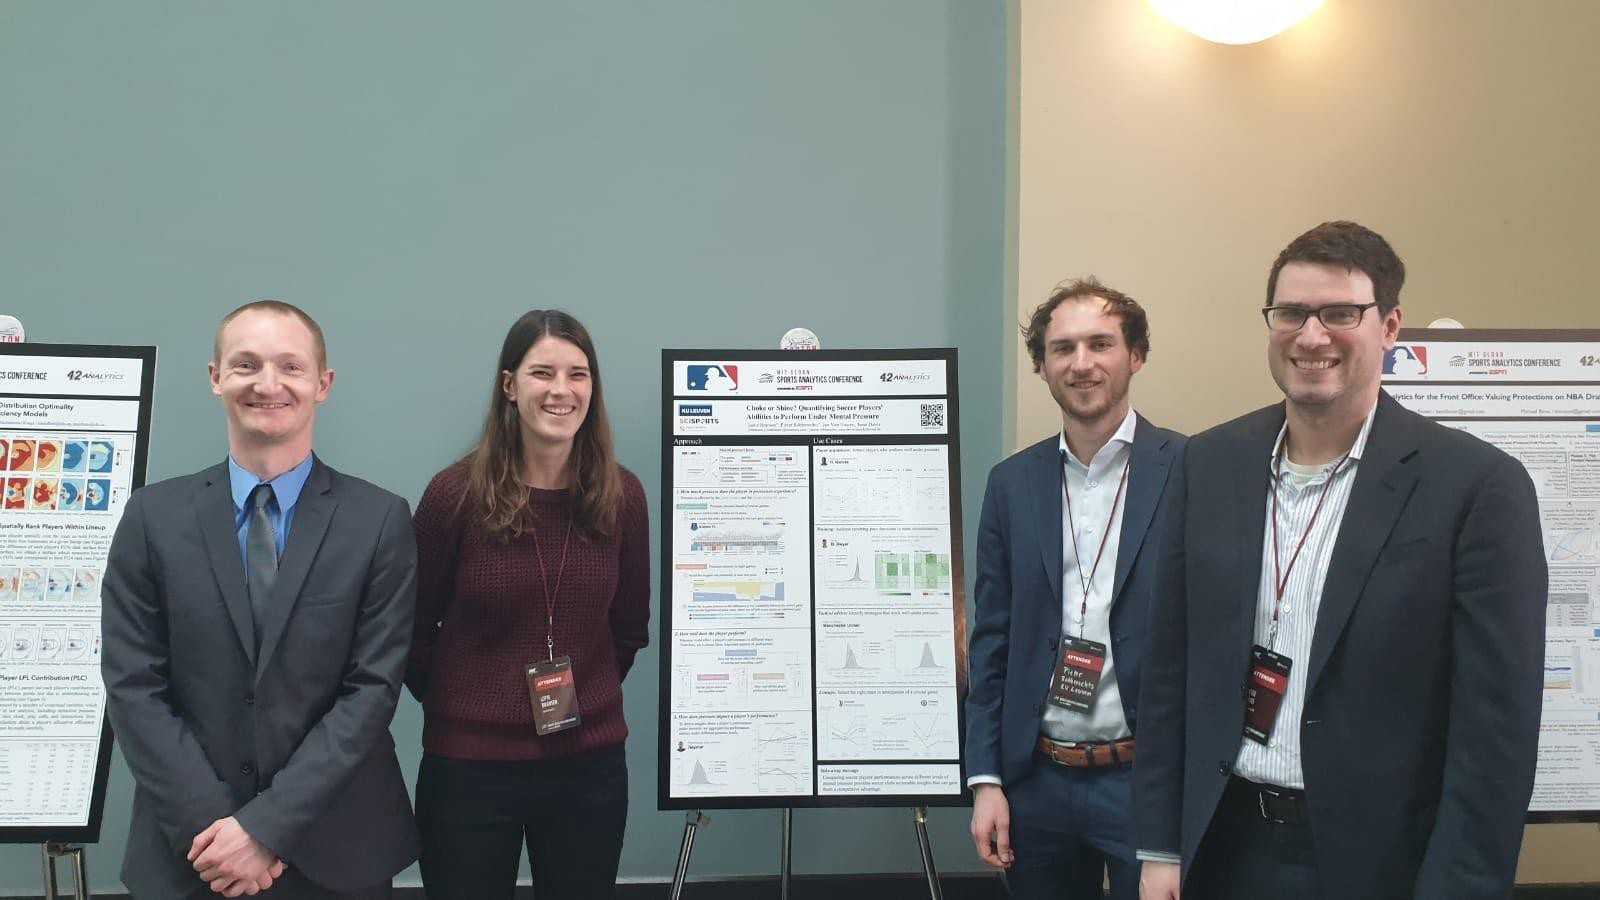 Left to right: me together with my co-authors Lotte Bransen, Pieter Robberechts and Jesse Davis at the 2019 MIT Sloan Sports Analytics Conference in Boston.